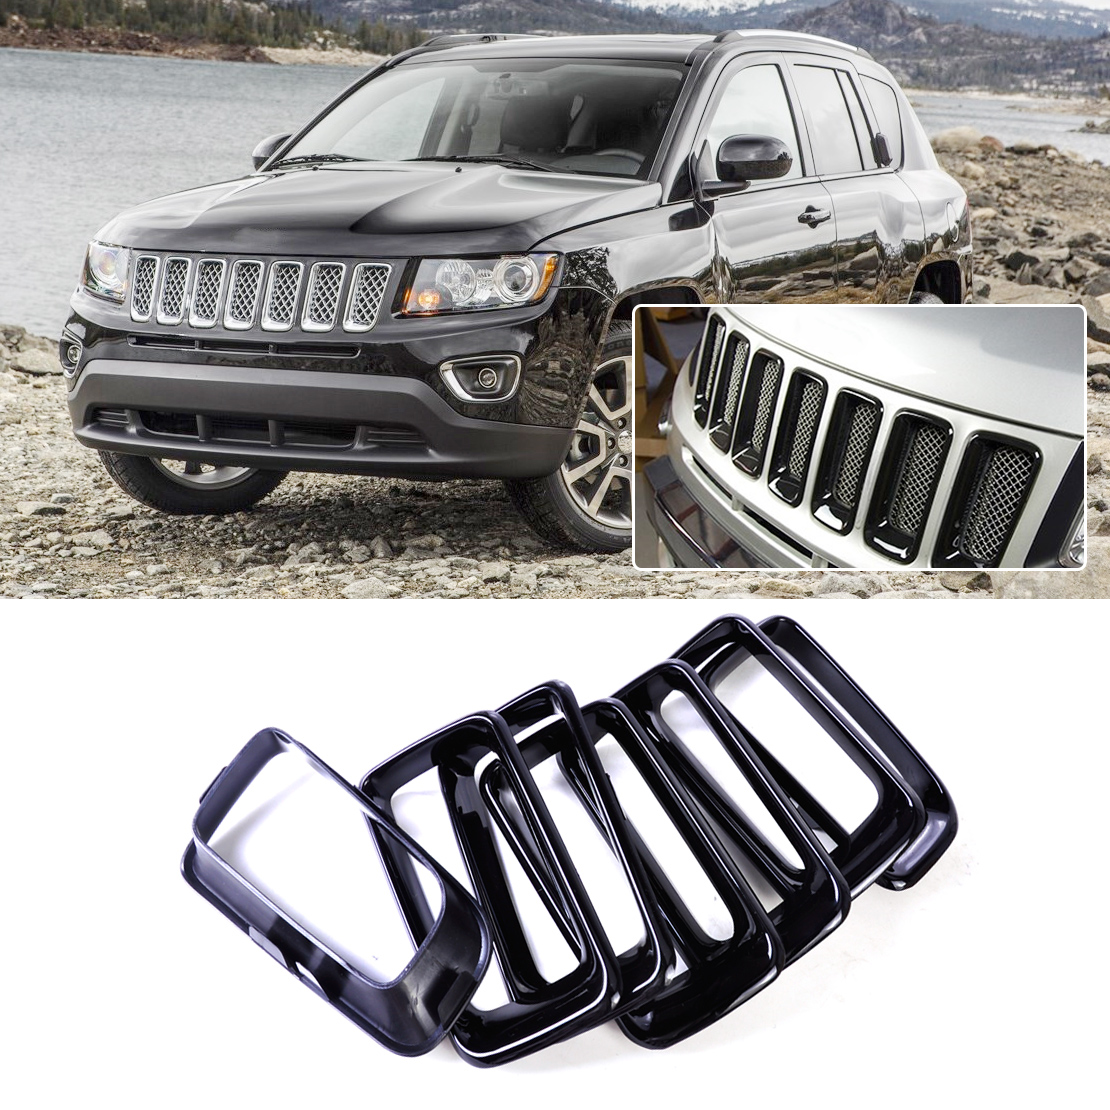 CITALL 7pcs ABS Front Grille Vent Hole Cover Trim Insert Frame Billet Vertical for Jeep Compass 2011 2012 2013 2014 2015 2016 chrome mesh grille grilles cover trim near front fog light lamp for vw volkswagon touareg 2011 2012 2013 2014